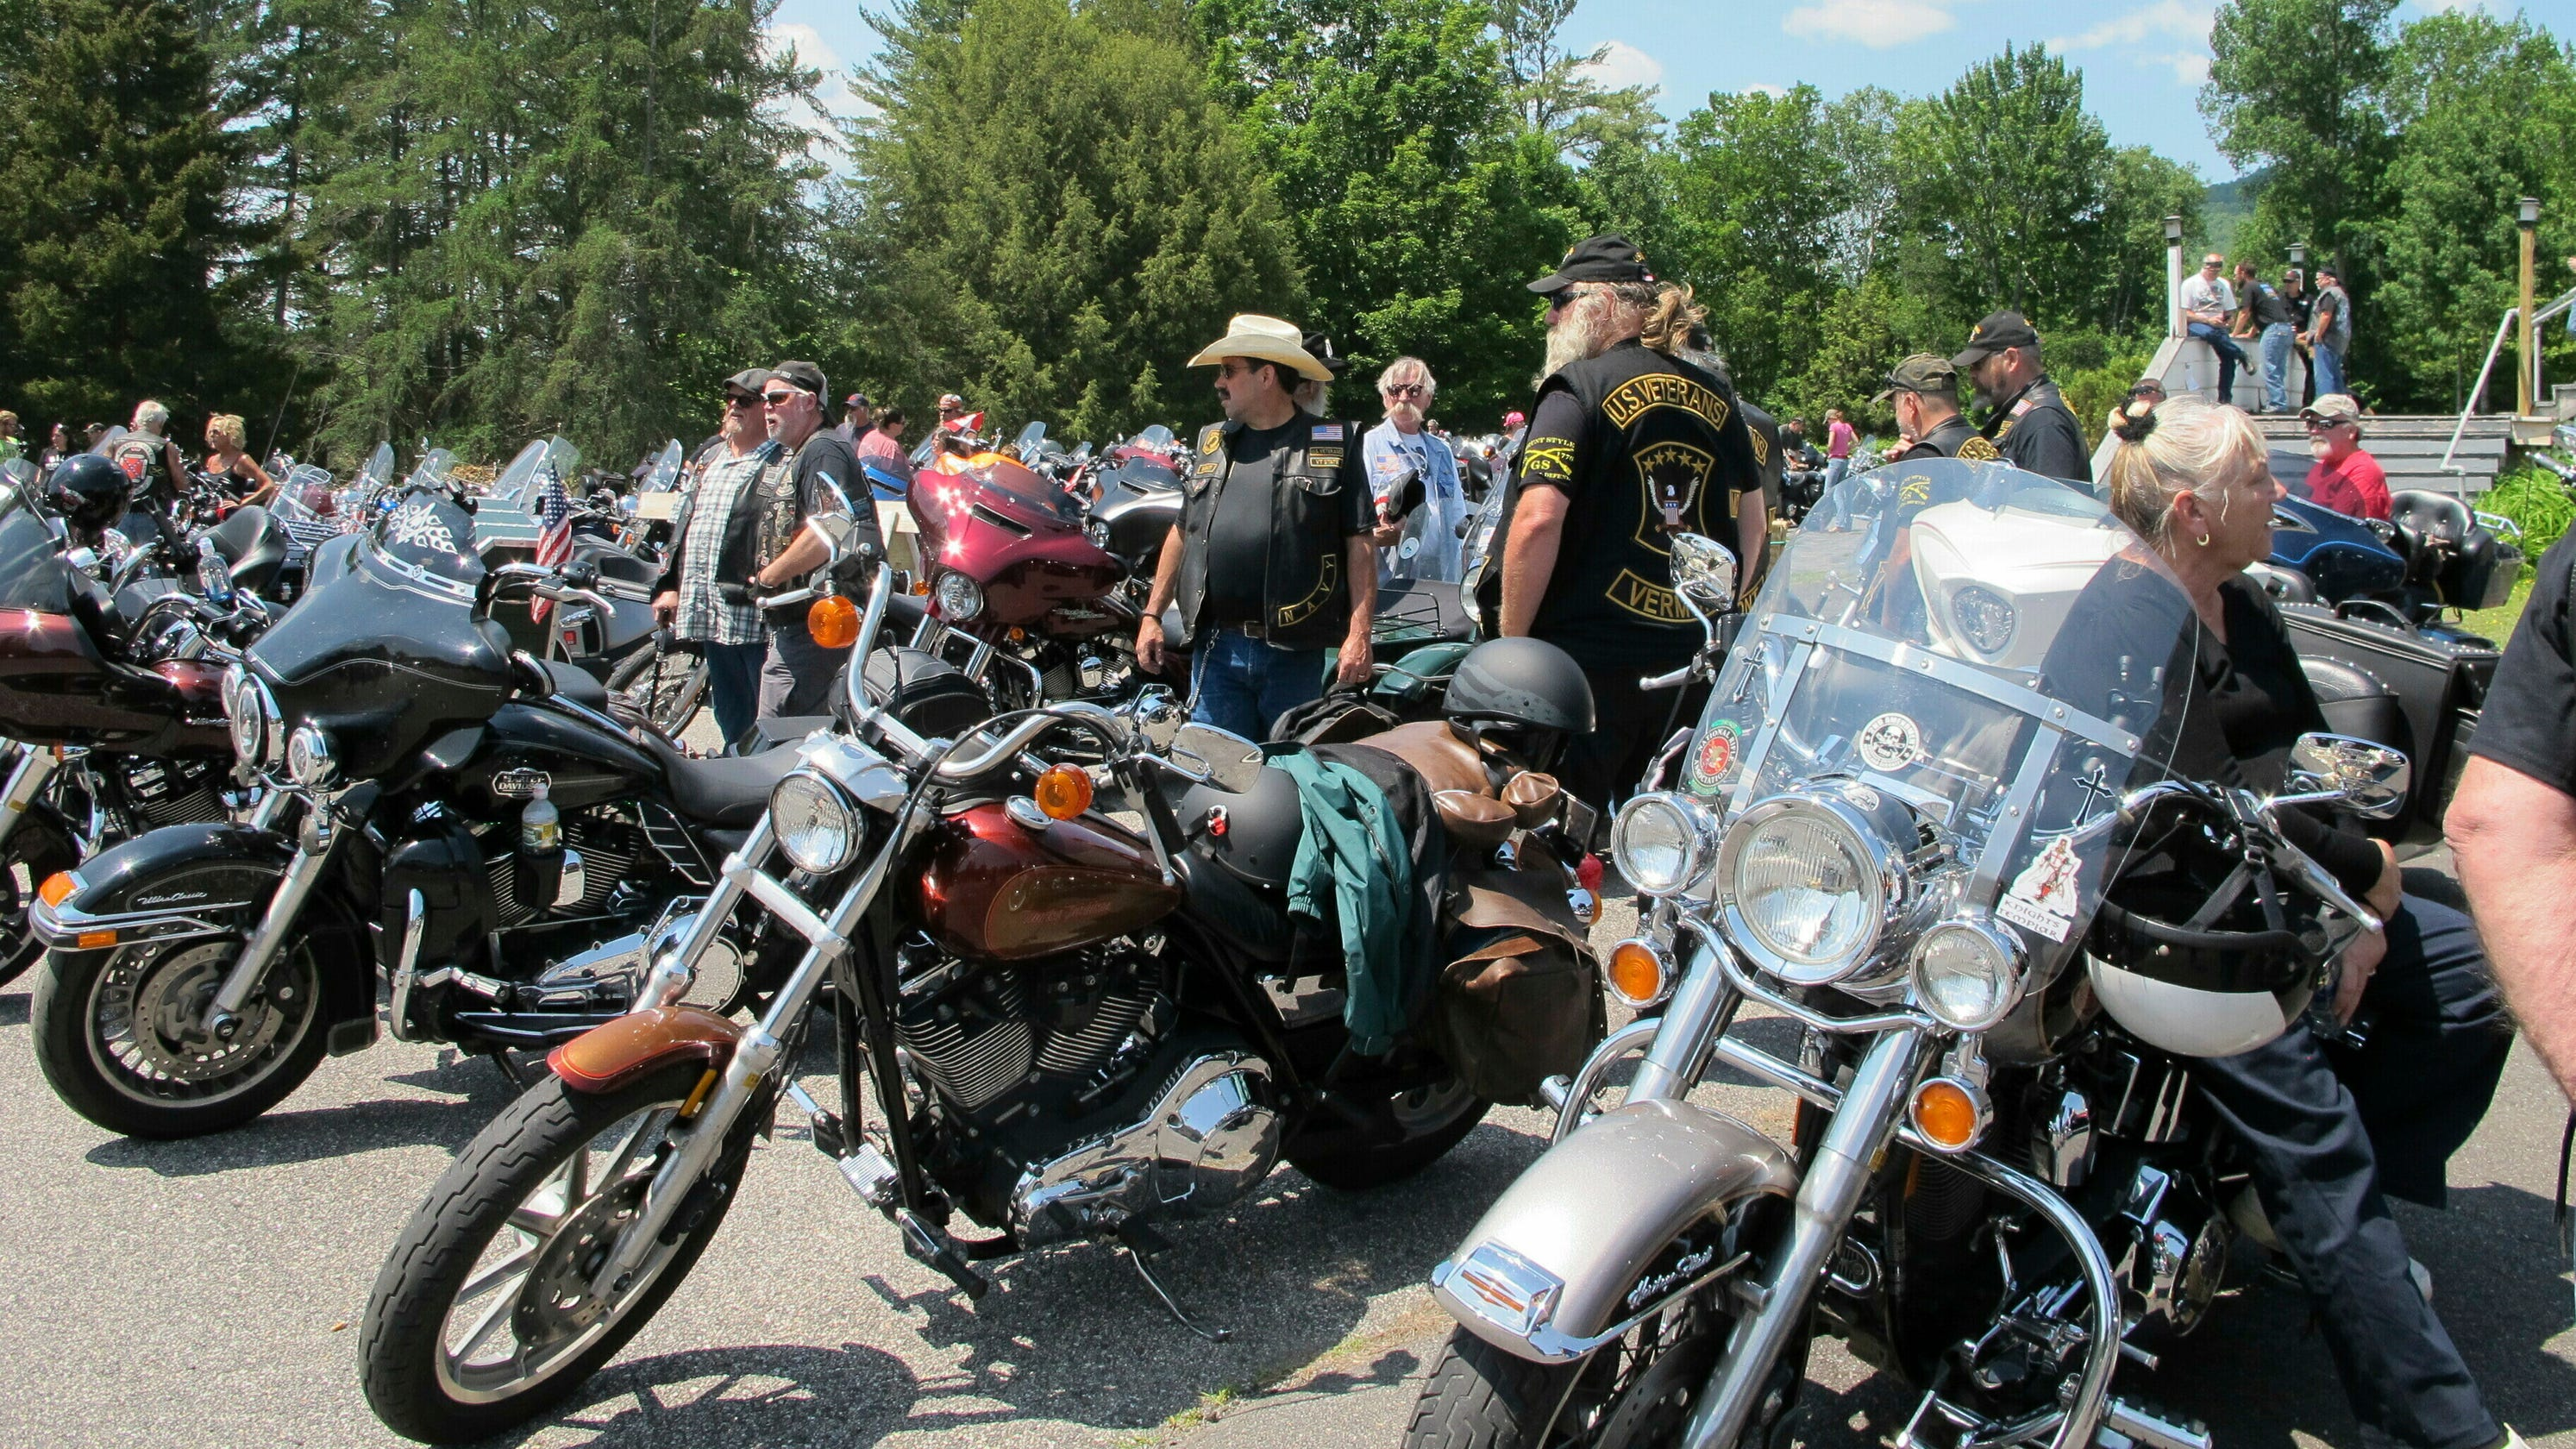 Bikers gather for emotional ceremony following deadly New Hampshire